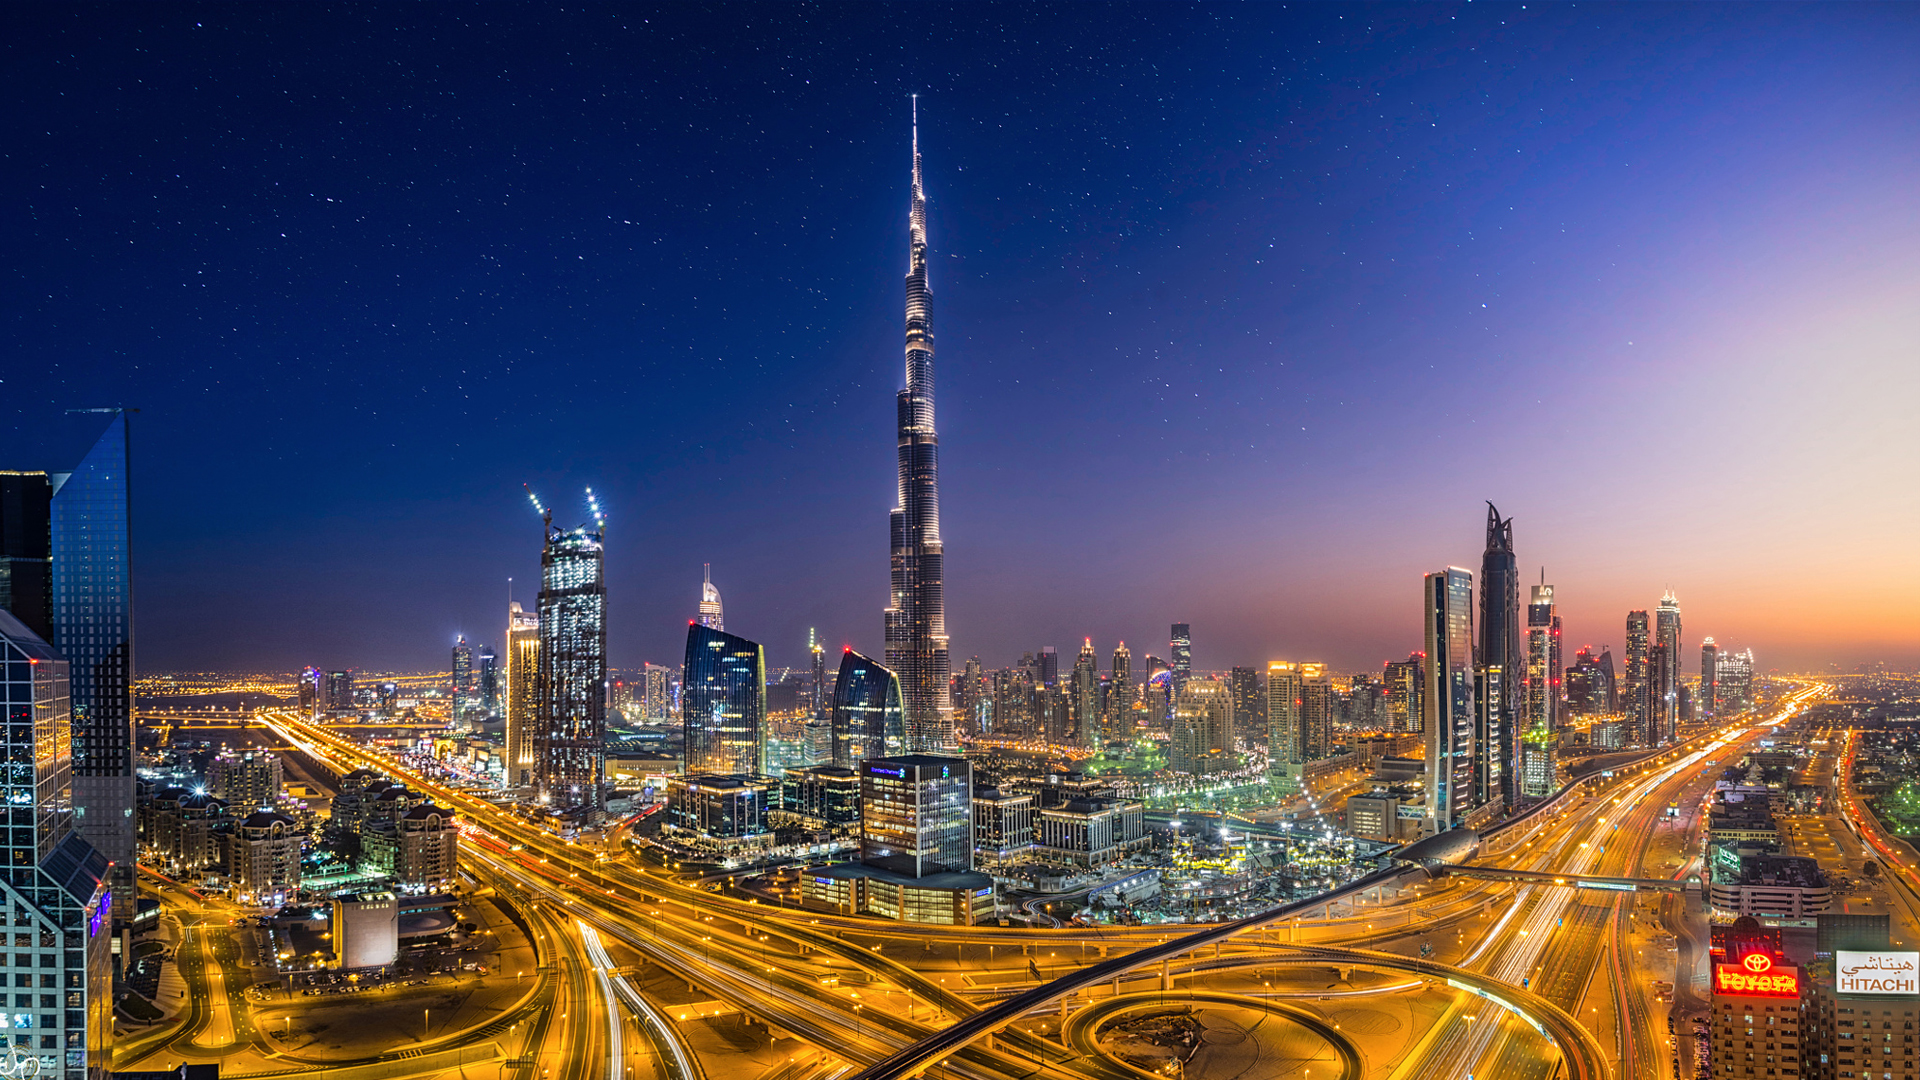 Burj khalifa dubai wallpapers pictures images for 3d wallpaper for home in dubai